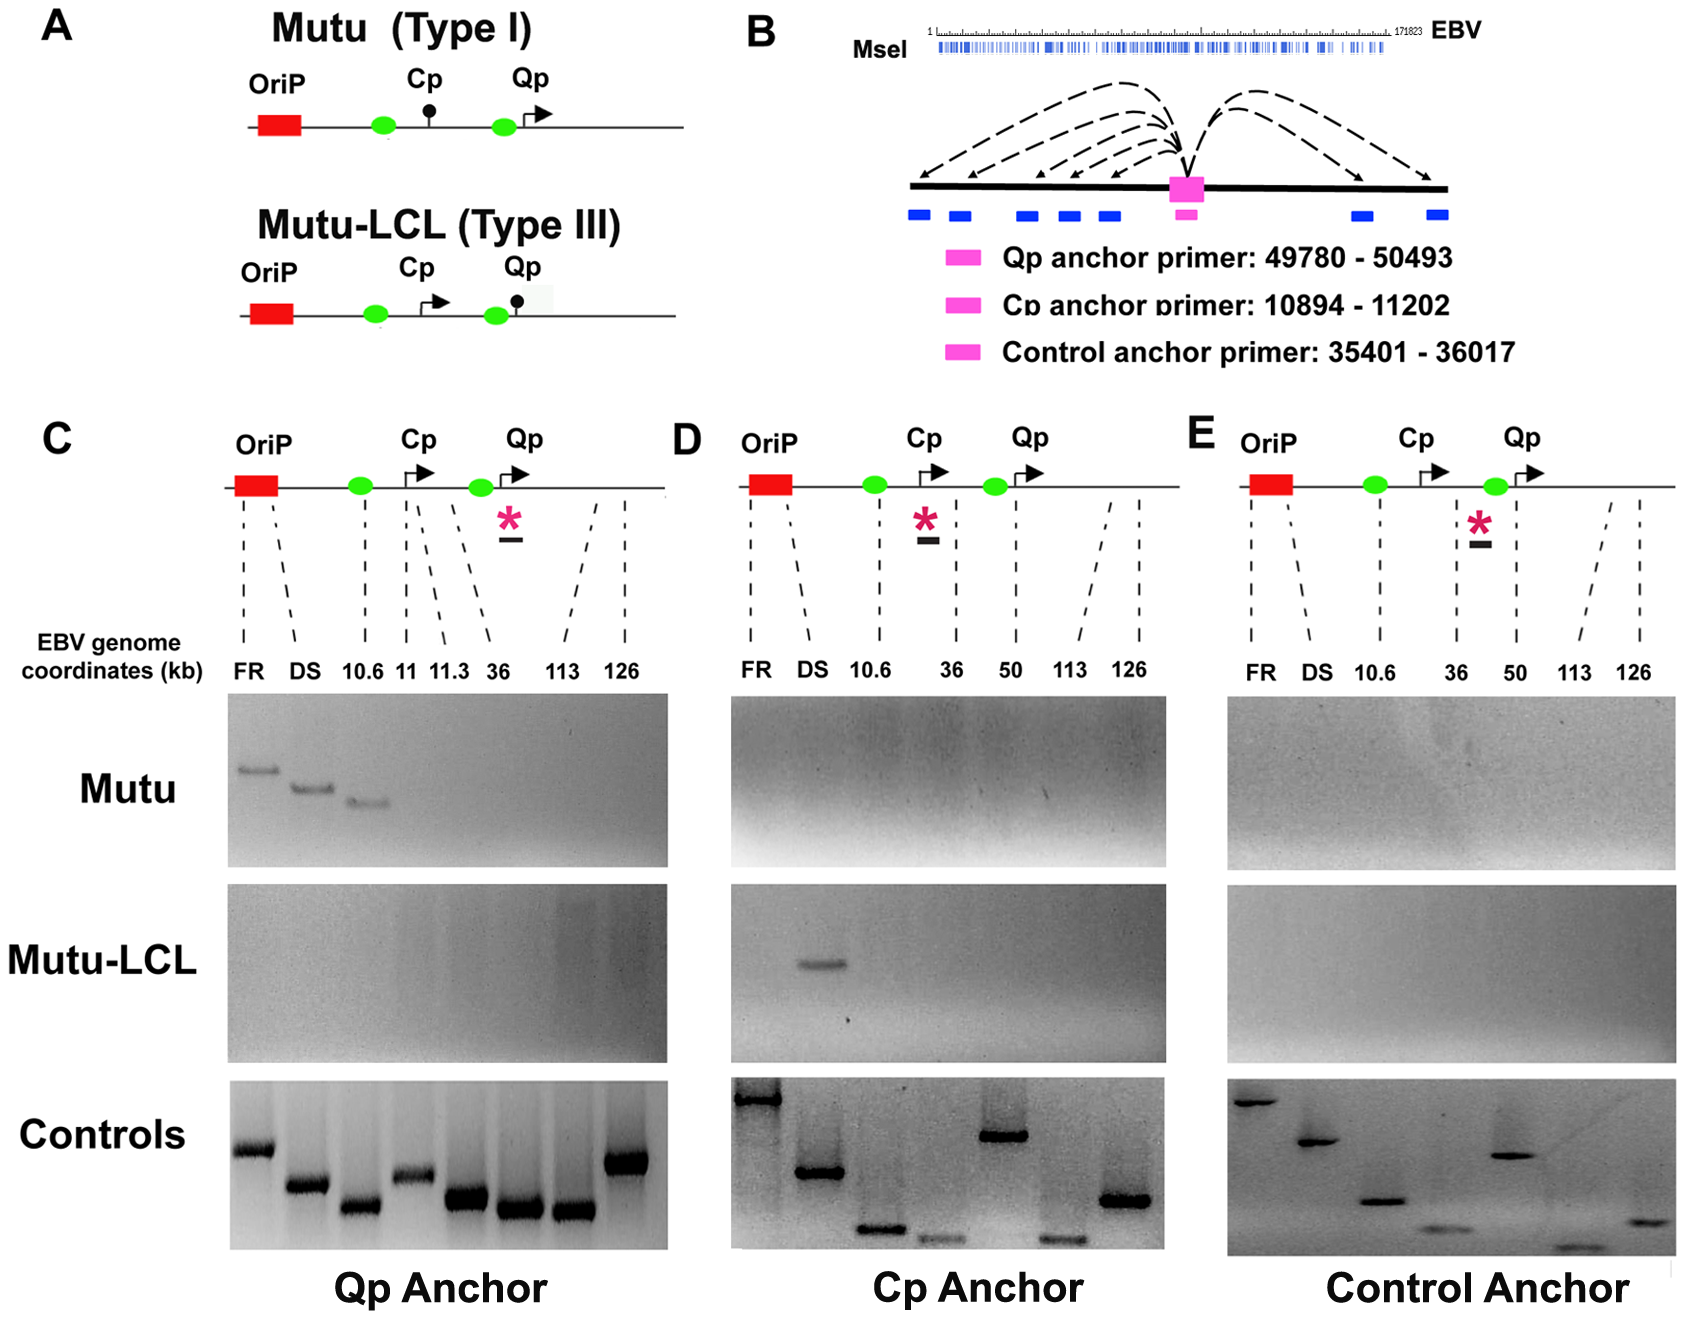 OriP region forms alternative chromatin loops in type I and type III latency types.